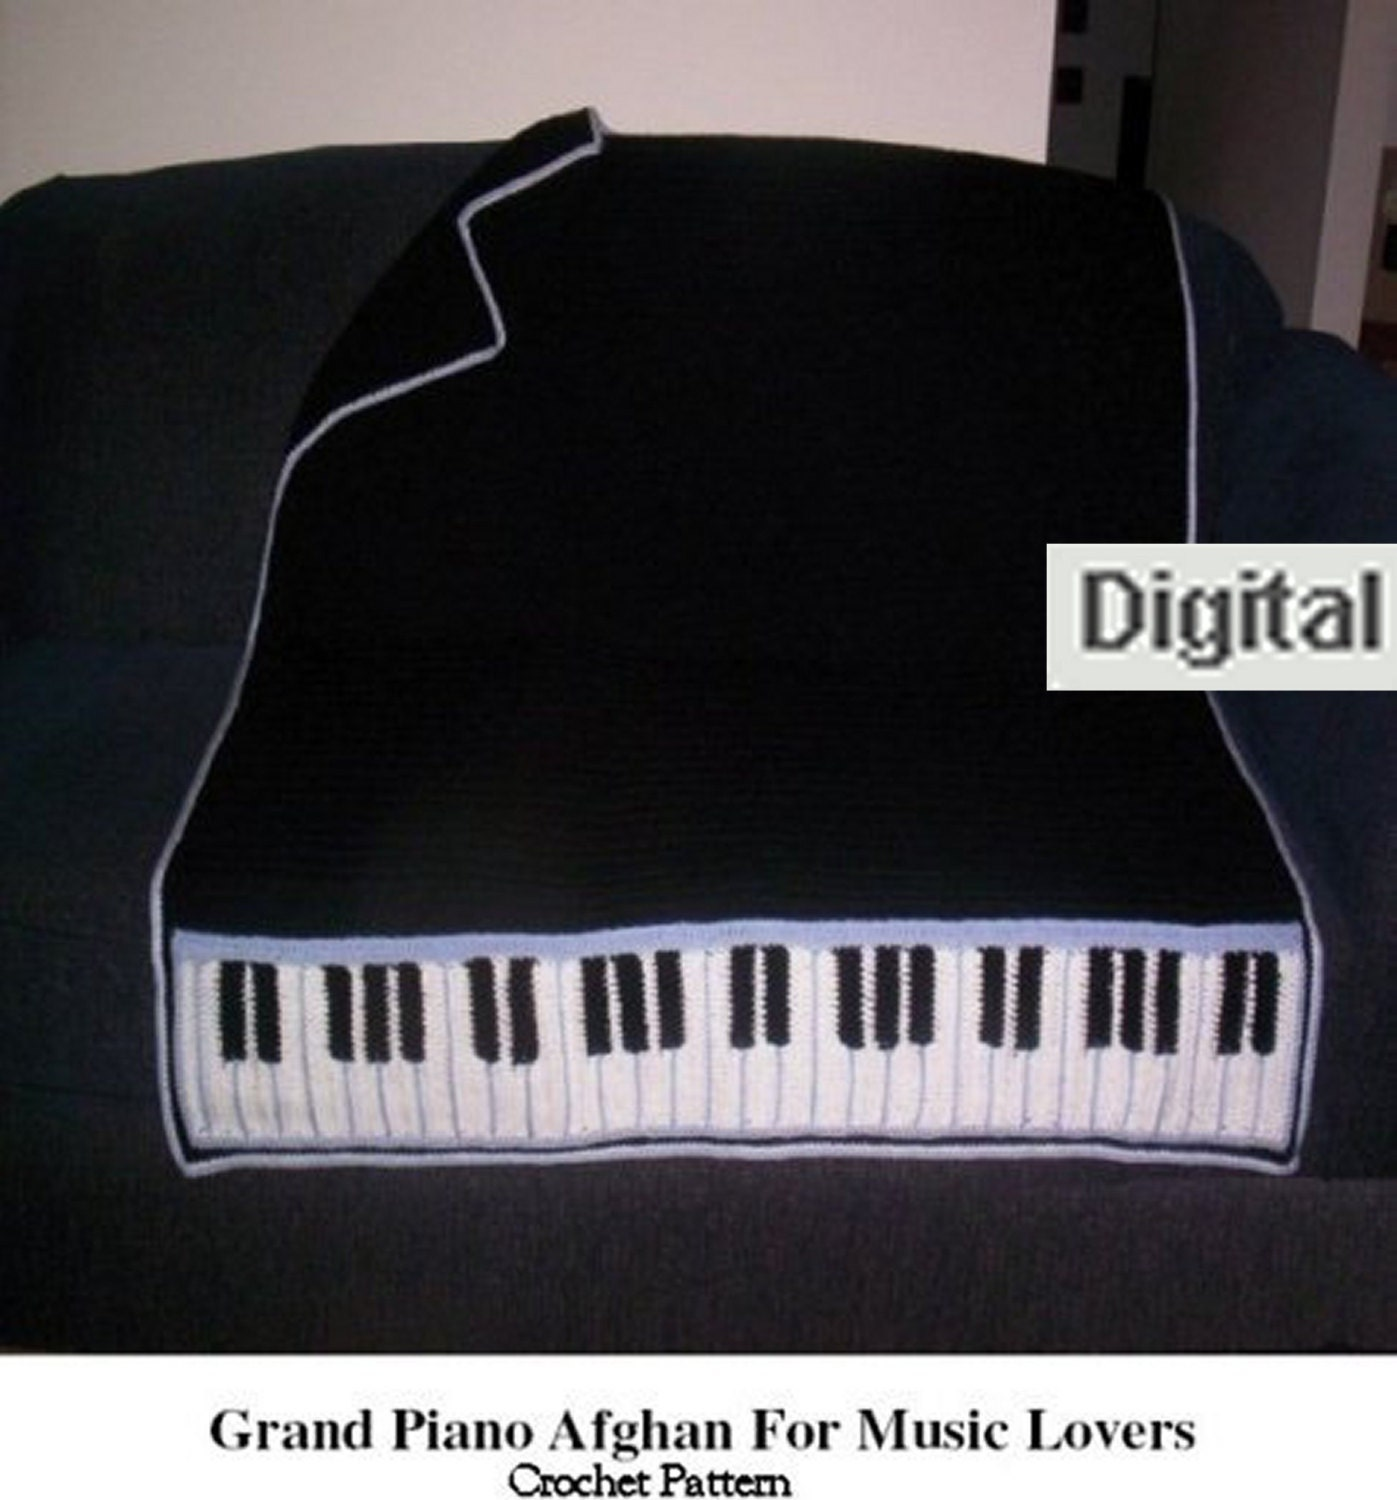 Crochet Pattern For Piano Afghan : Piano Afghan Crochet Pattern Afghan Pattern pdf by postalsusie